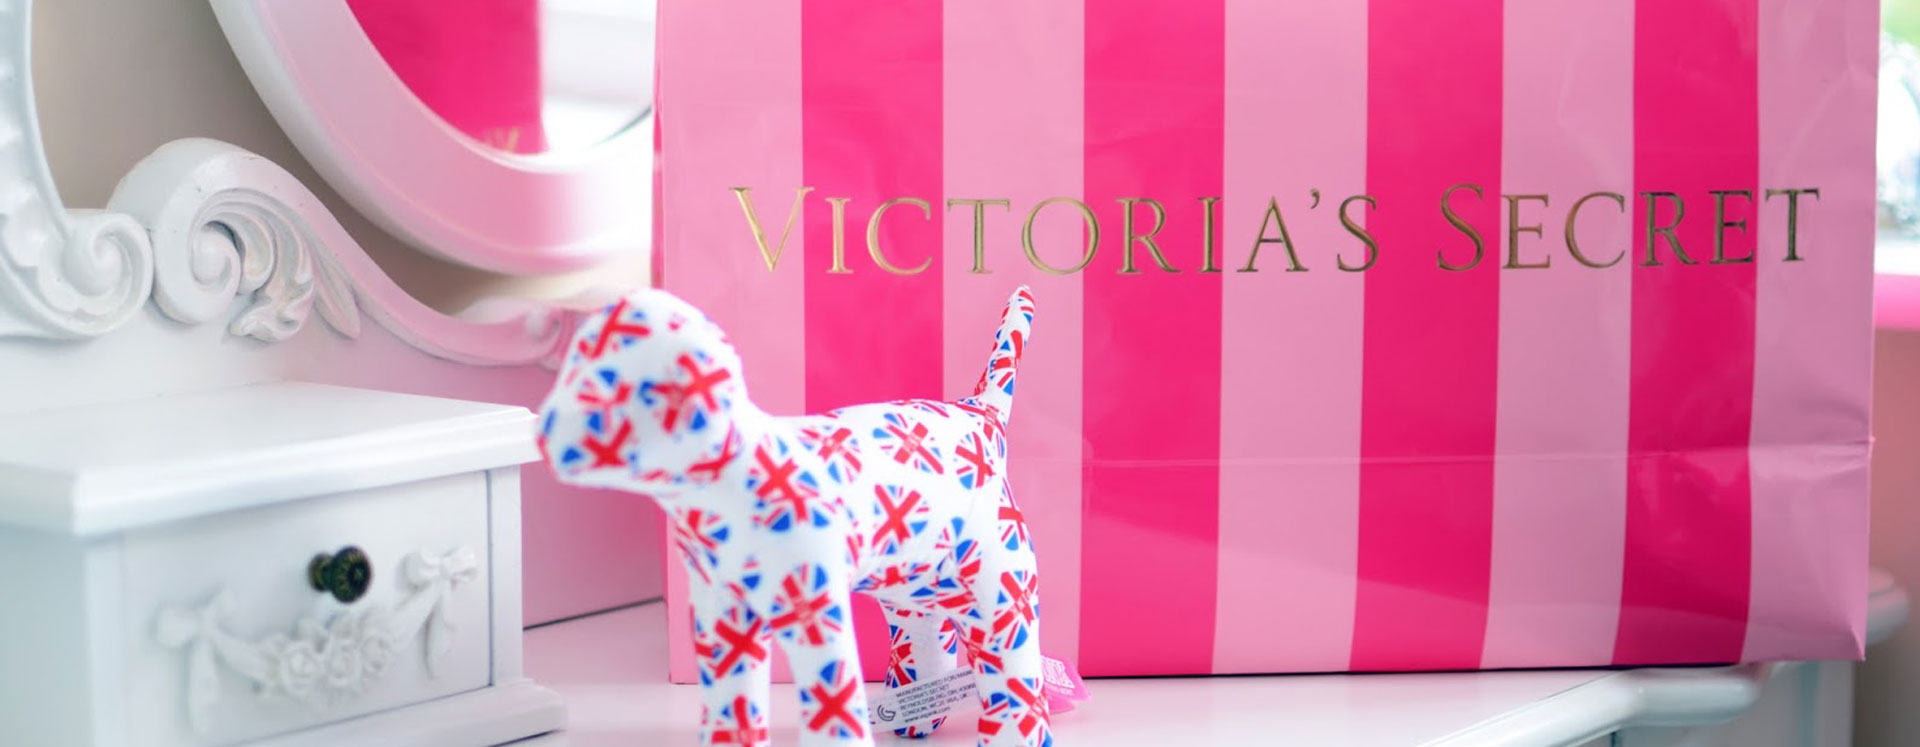 Victoria's Secret Black Friday Deals